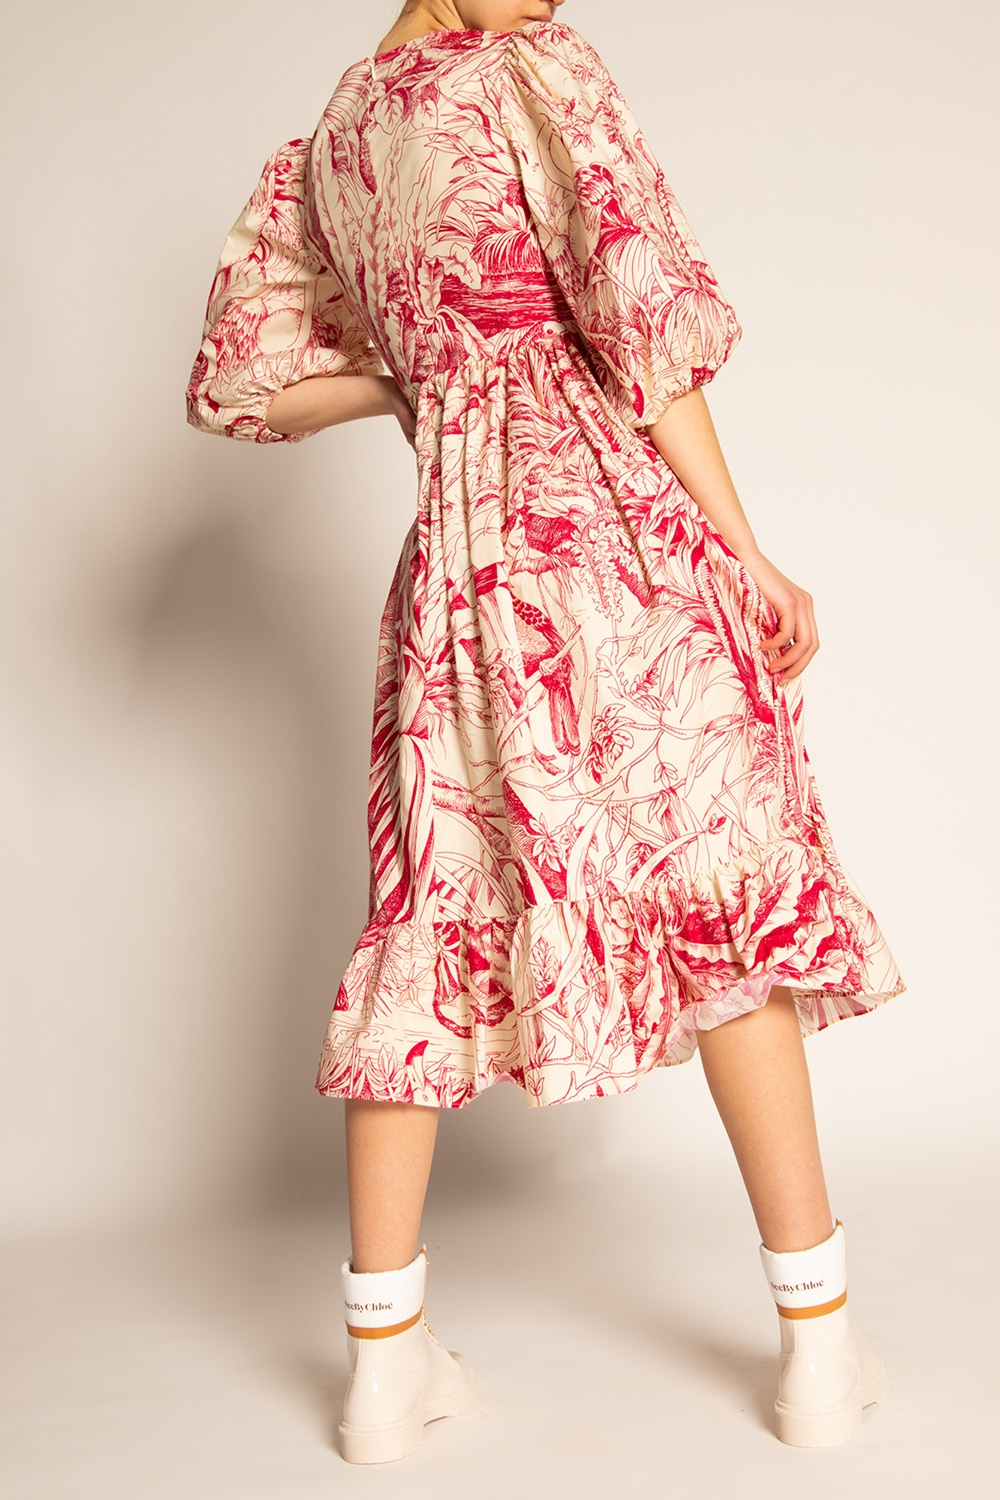 Red Valentino Long sleeve dress